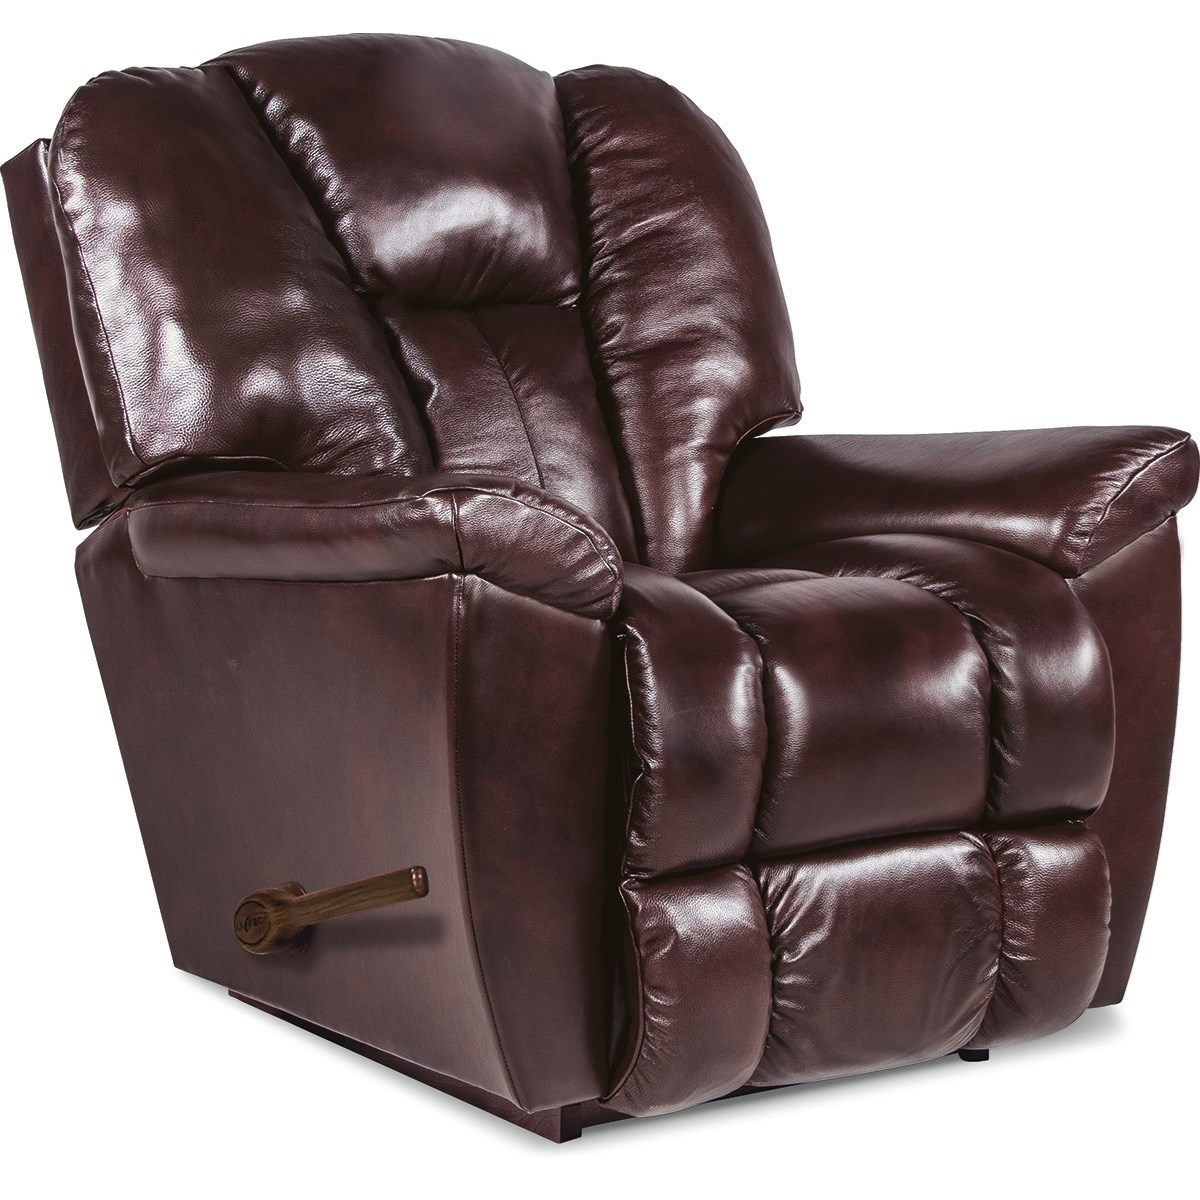 Maverick Rocker Recliner by La-Z-Boy at Home Furnishings Direct